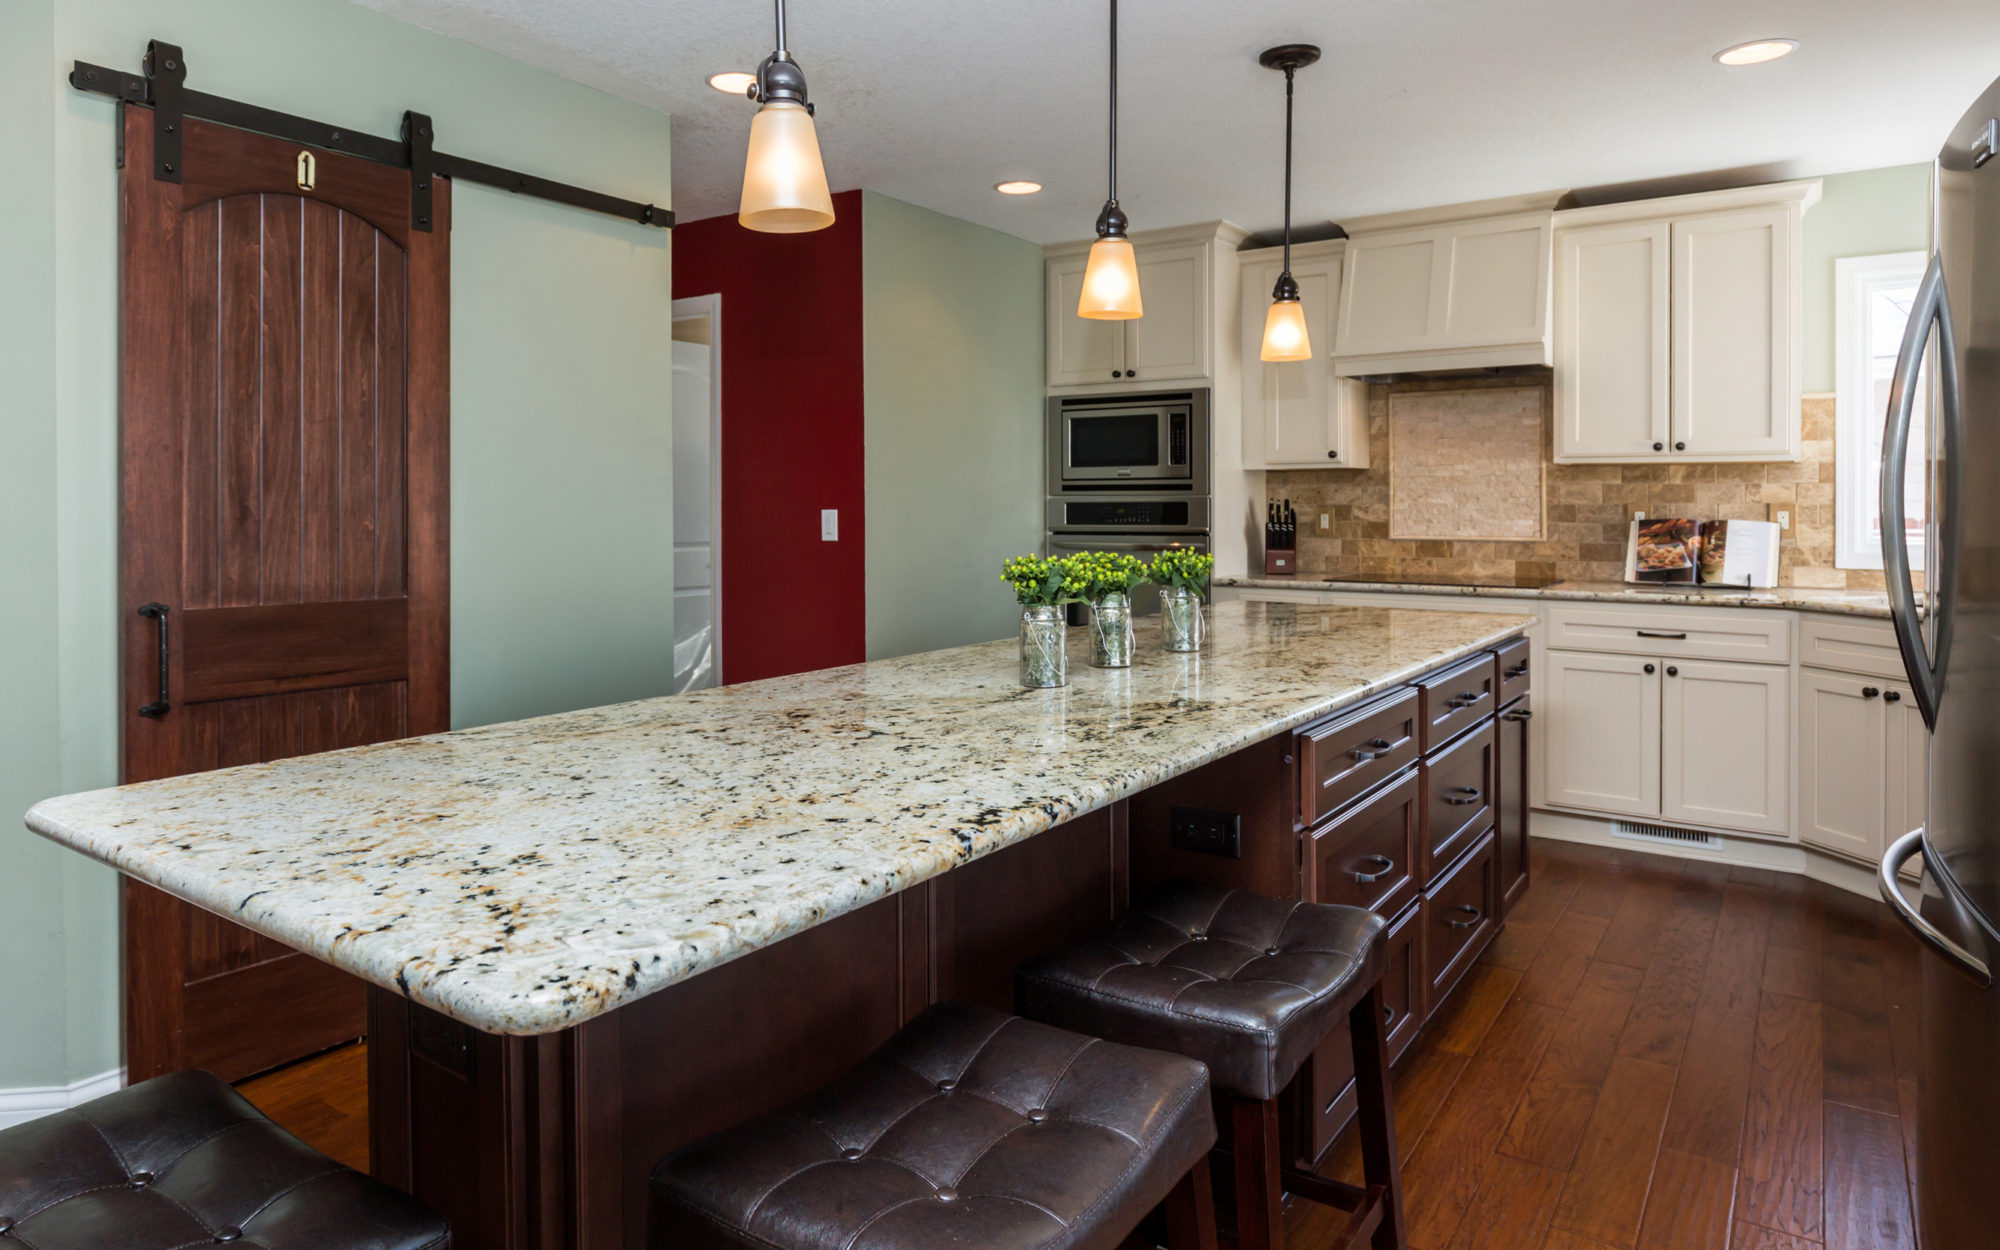 Superbe Featured Des Moines Kitchen Remodels. View All Kitchens